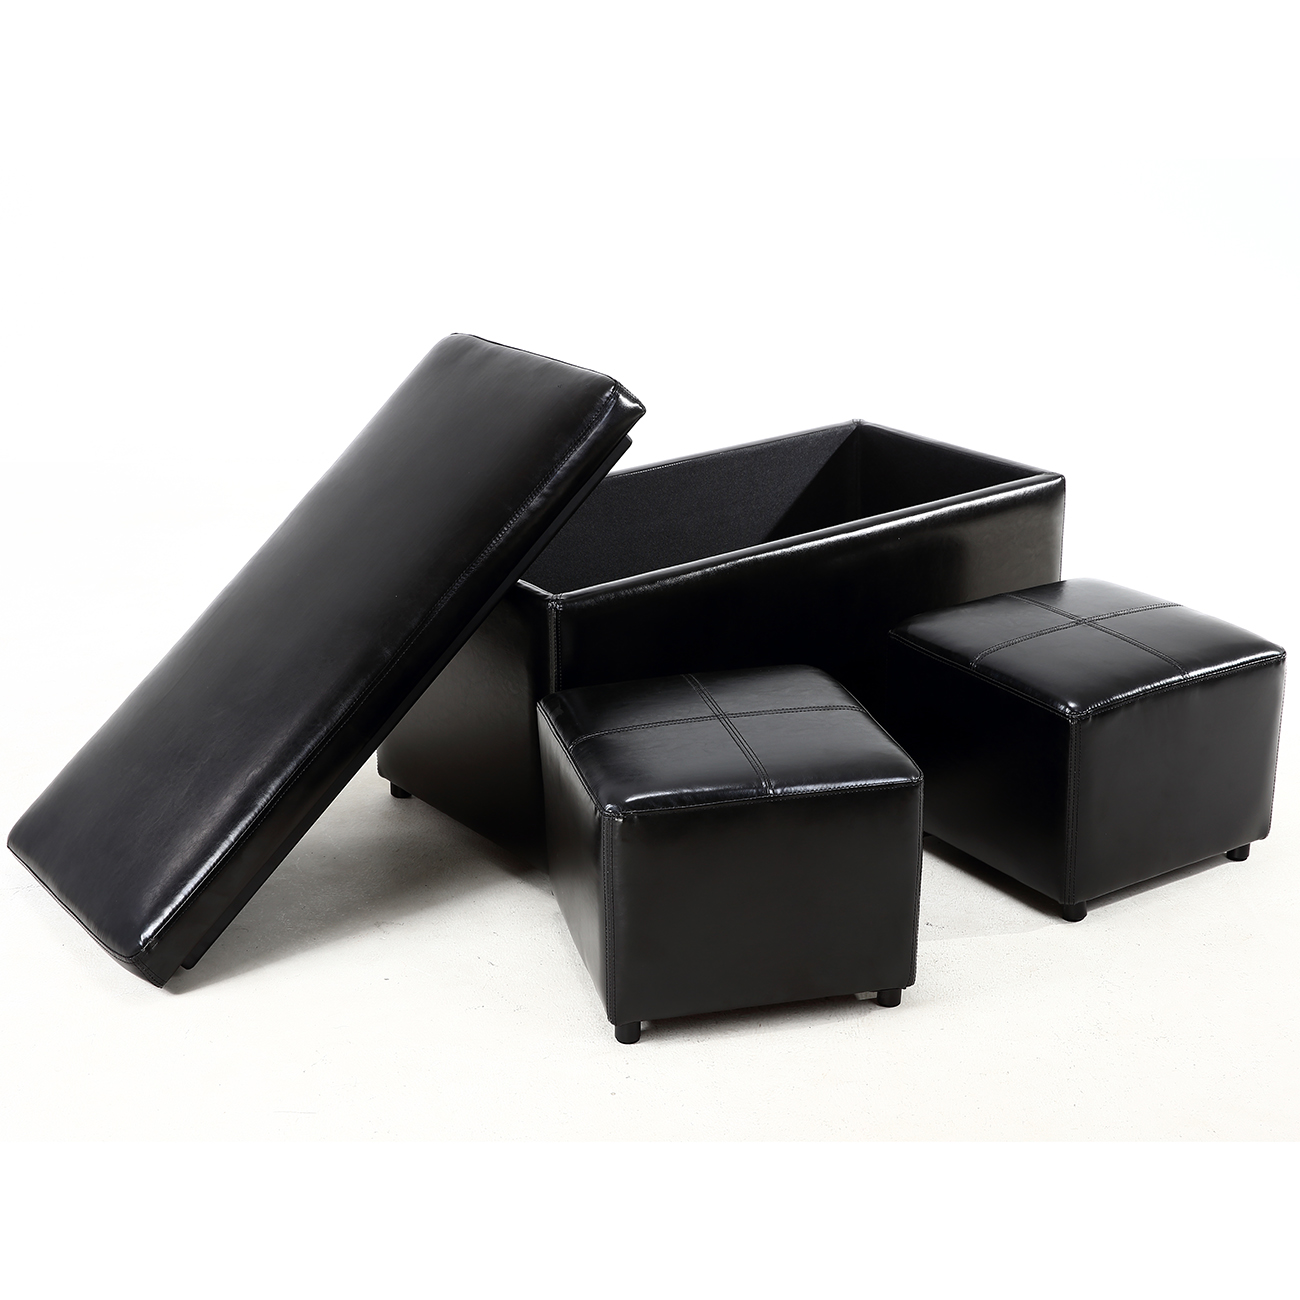 Footstool Coffee Table Tray: 3PC Ottoman Bench Storage Lid Tray Footrest Coffee Table